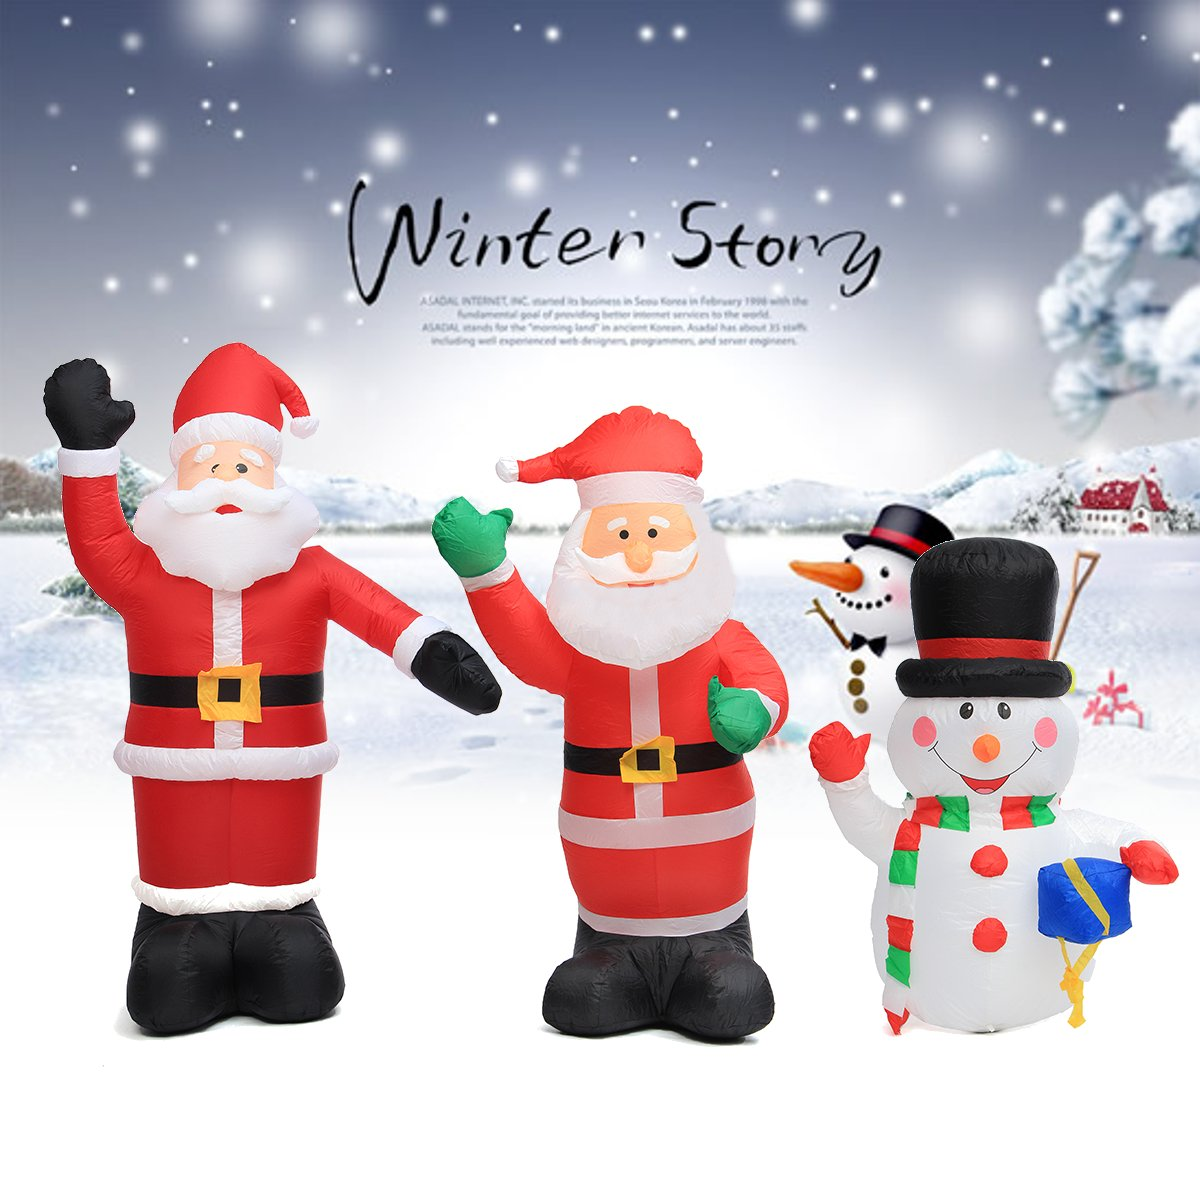 120cm/180 cm/240cm Air Inflatable Santa Claus Snowman Outdoor Airblown Christmas Decoration Figure Kids Classic Children Toys 2 4m air inflatable santa claus outdoor airblown christmas decoration figure kids classic toys with integrated fan